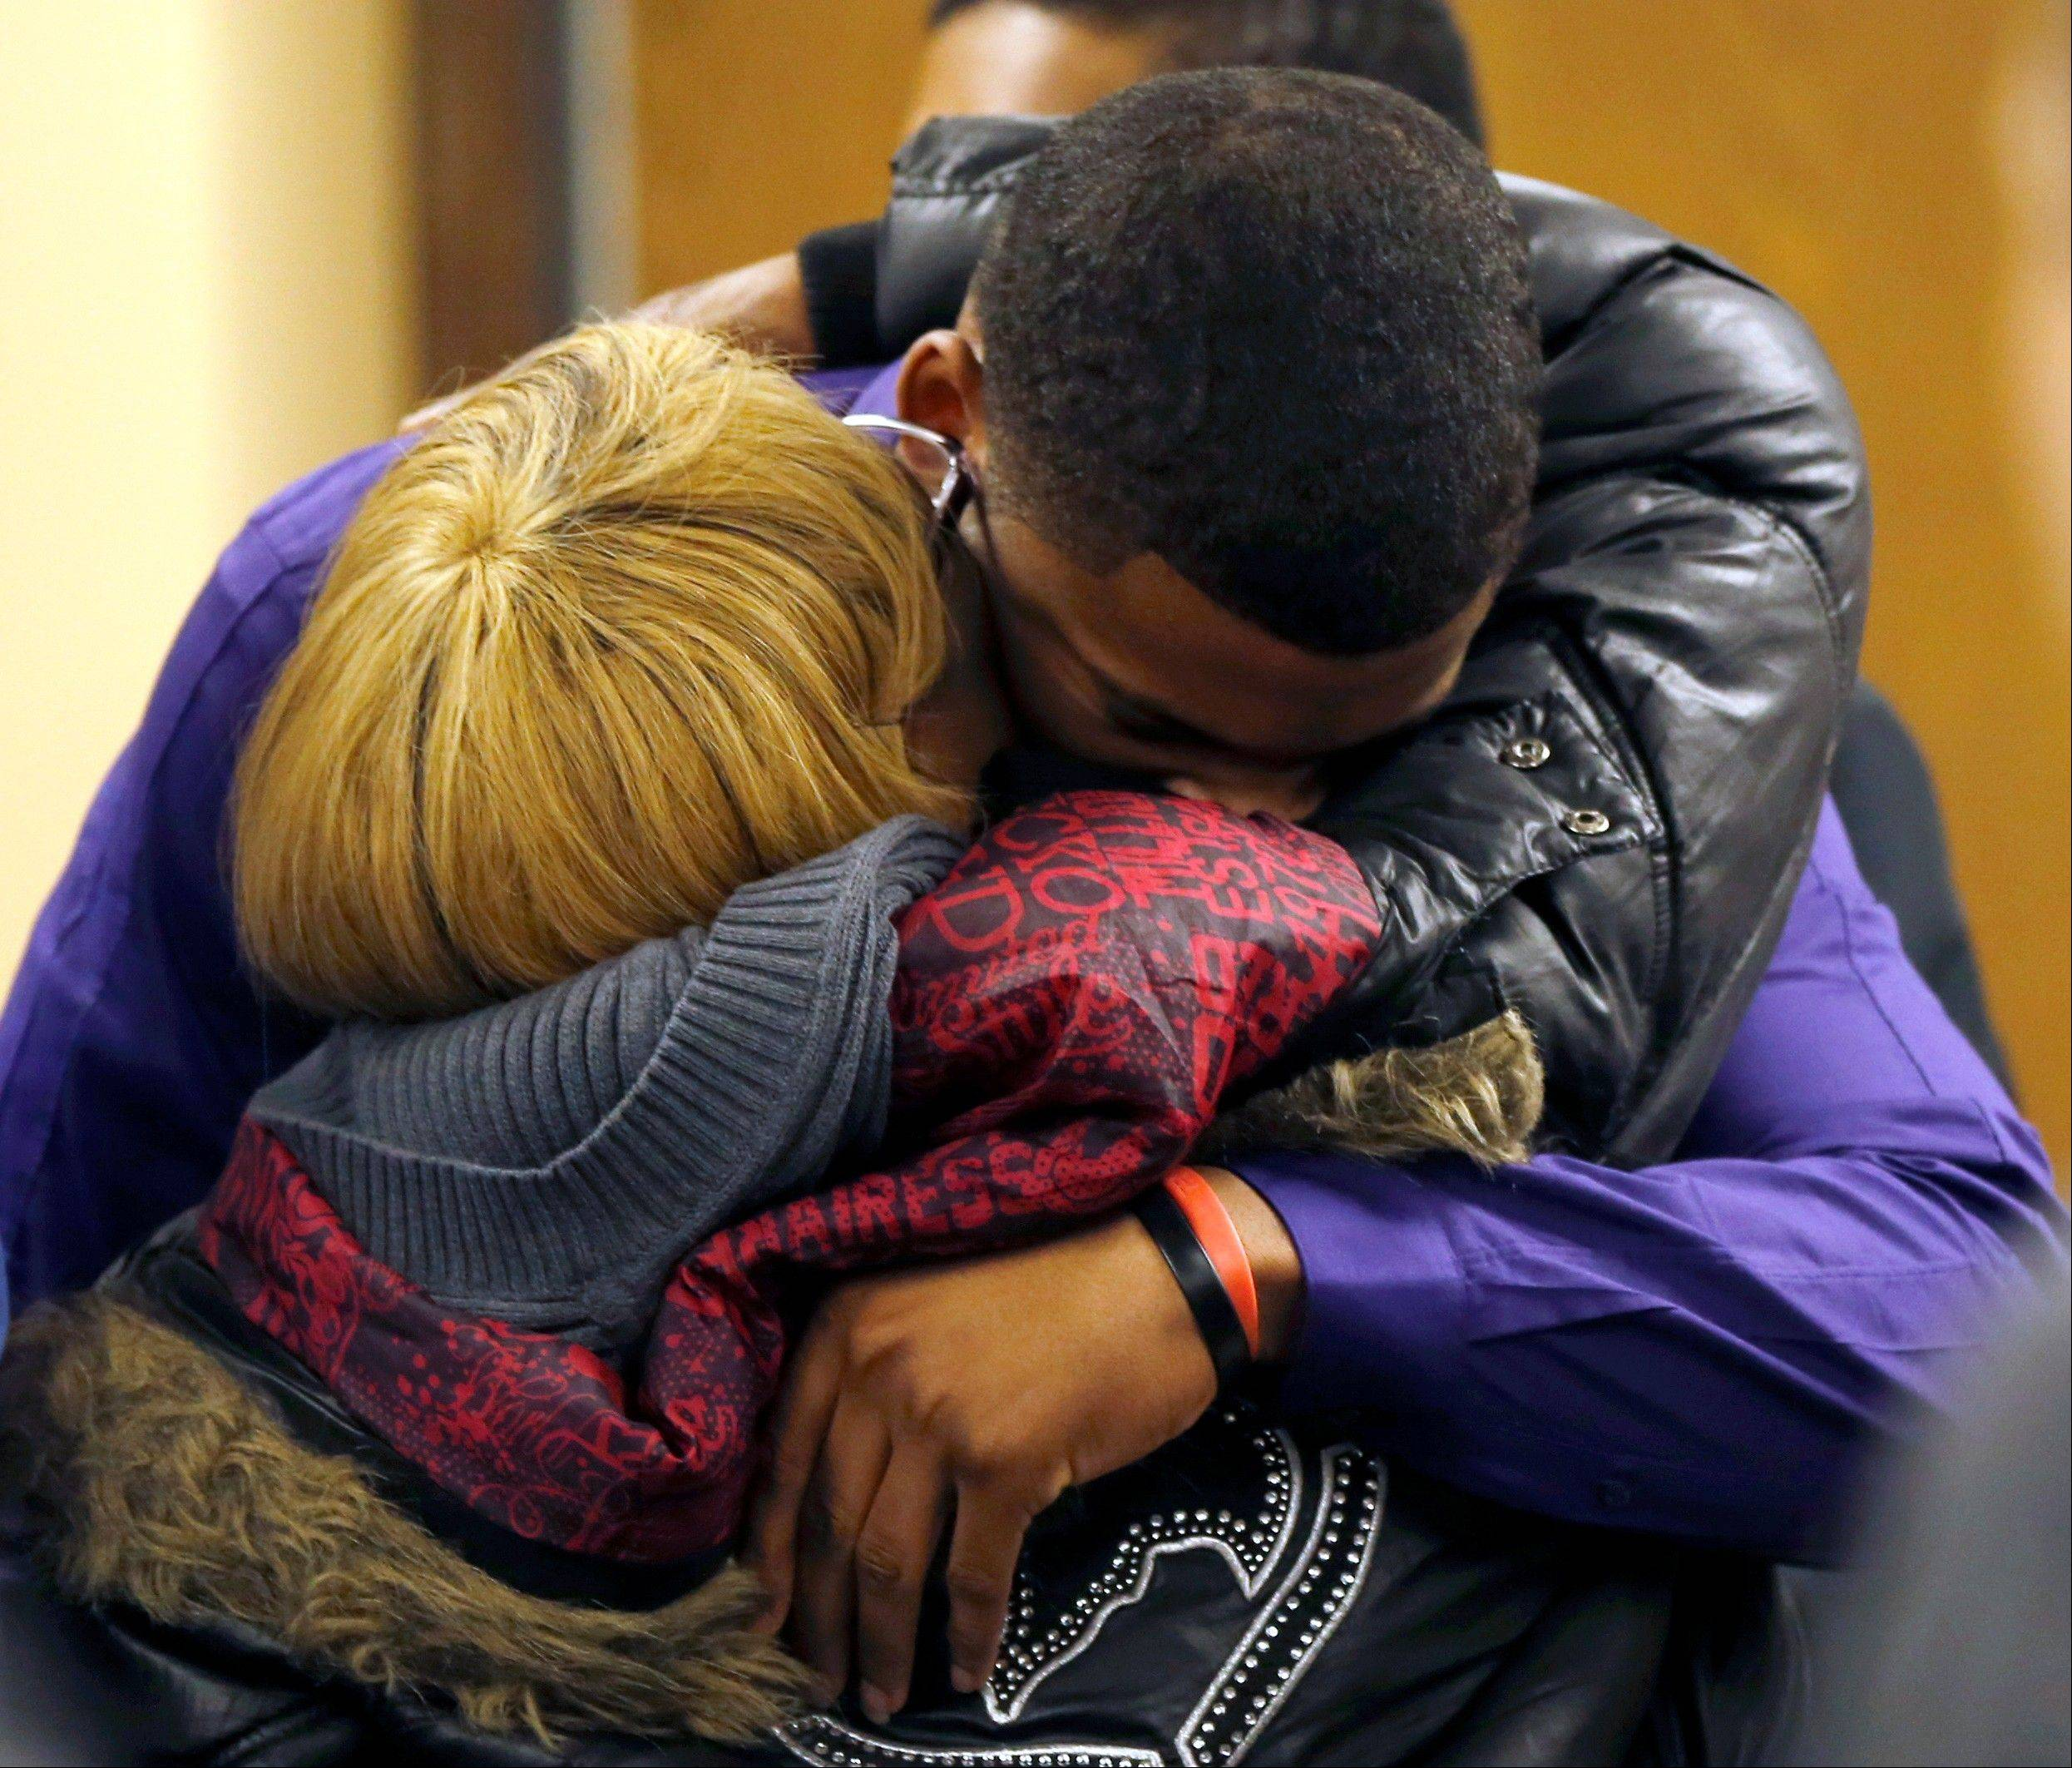 Ma'lik Richmond, 16, top, hugs his mother Daphne Birden, after closing arguments were made in the juvenile trial for him and co-defendant Trent Mays, 17, on rape charges.